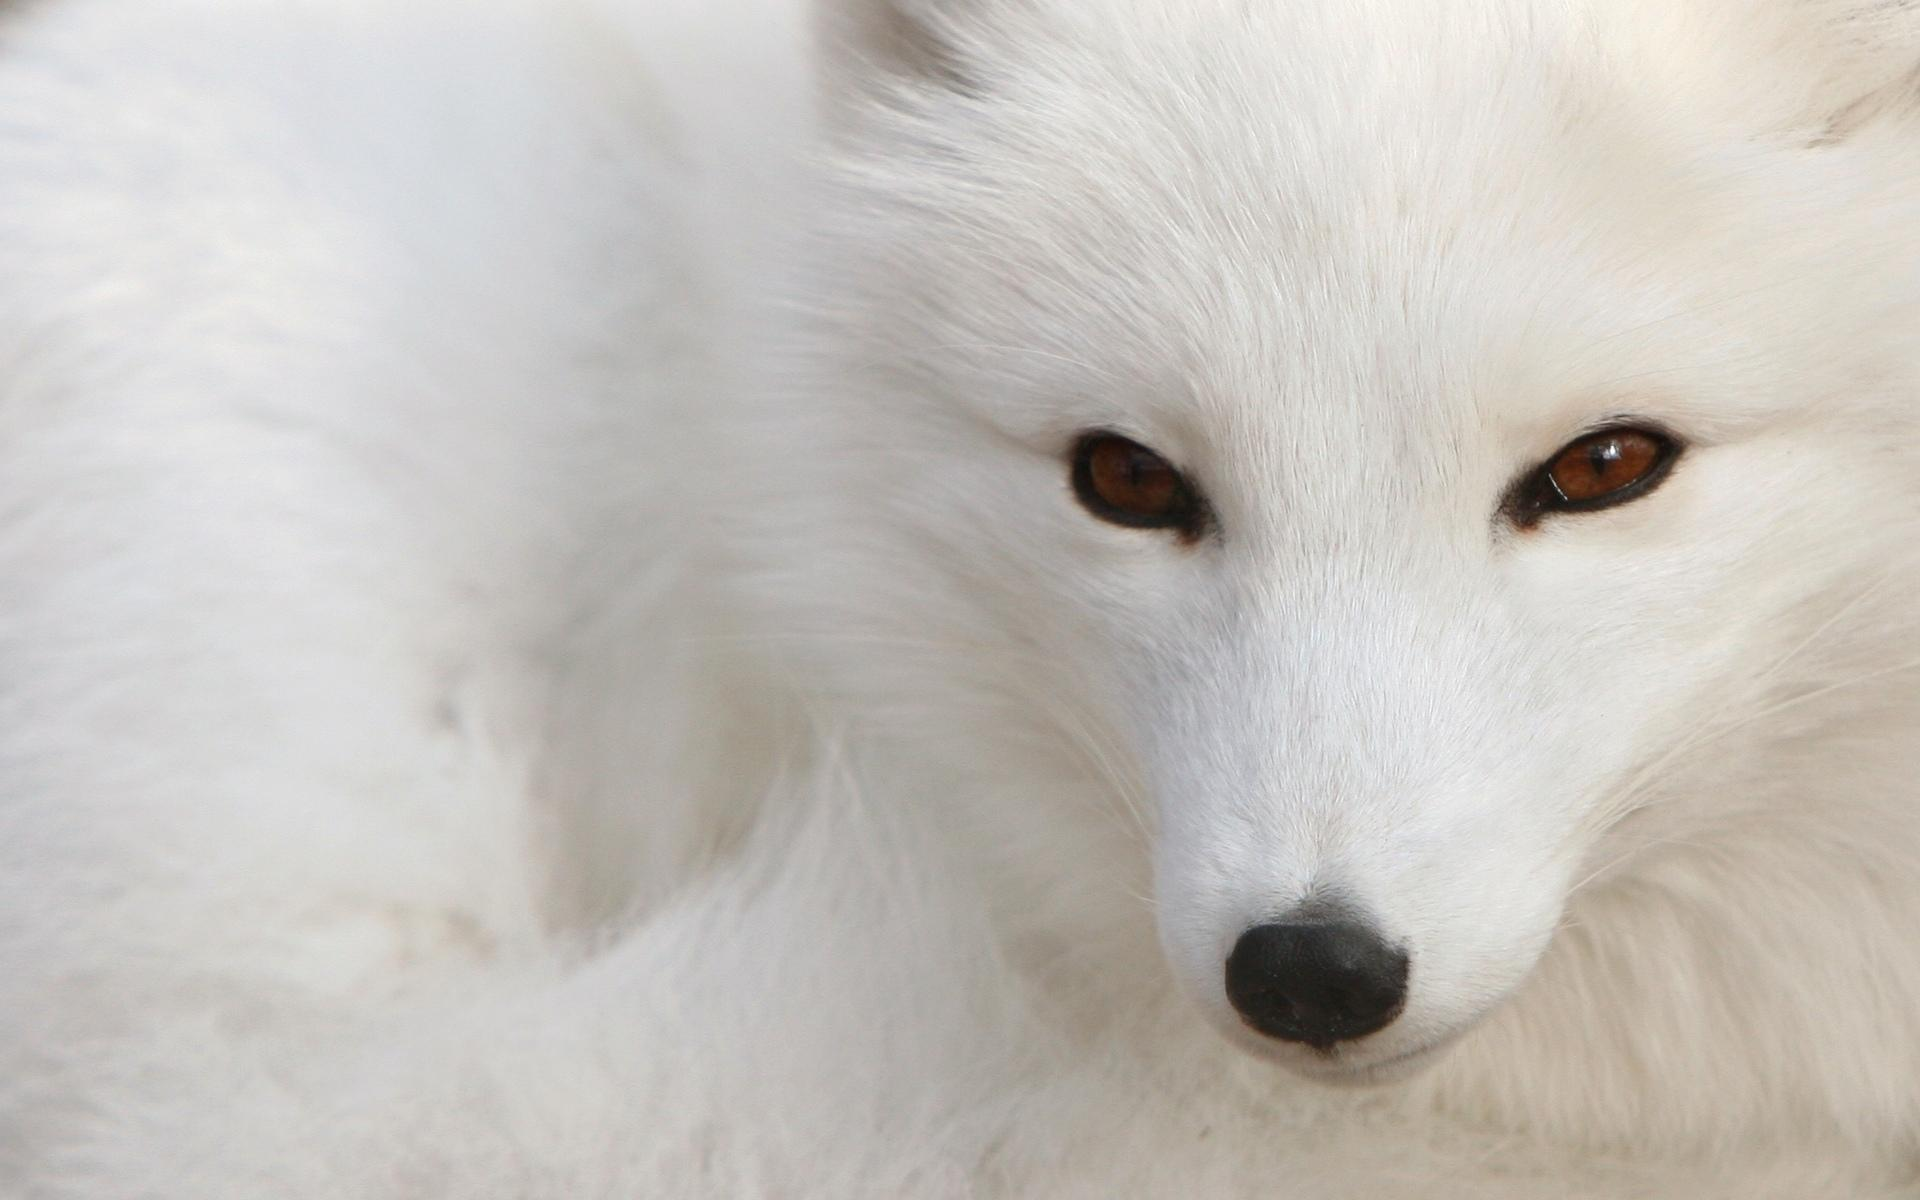 An arctic fox looking into the camera with white fur a black nose and